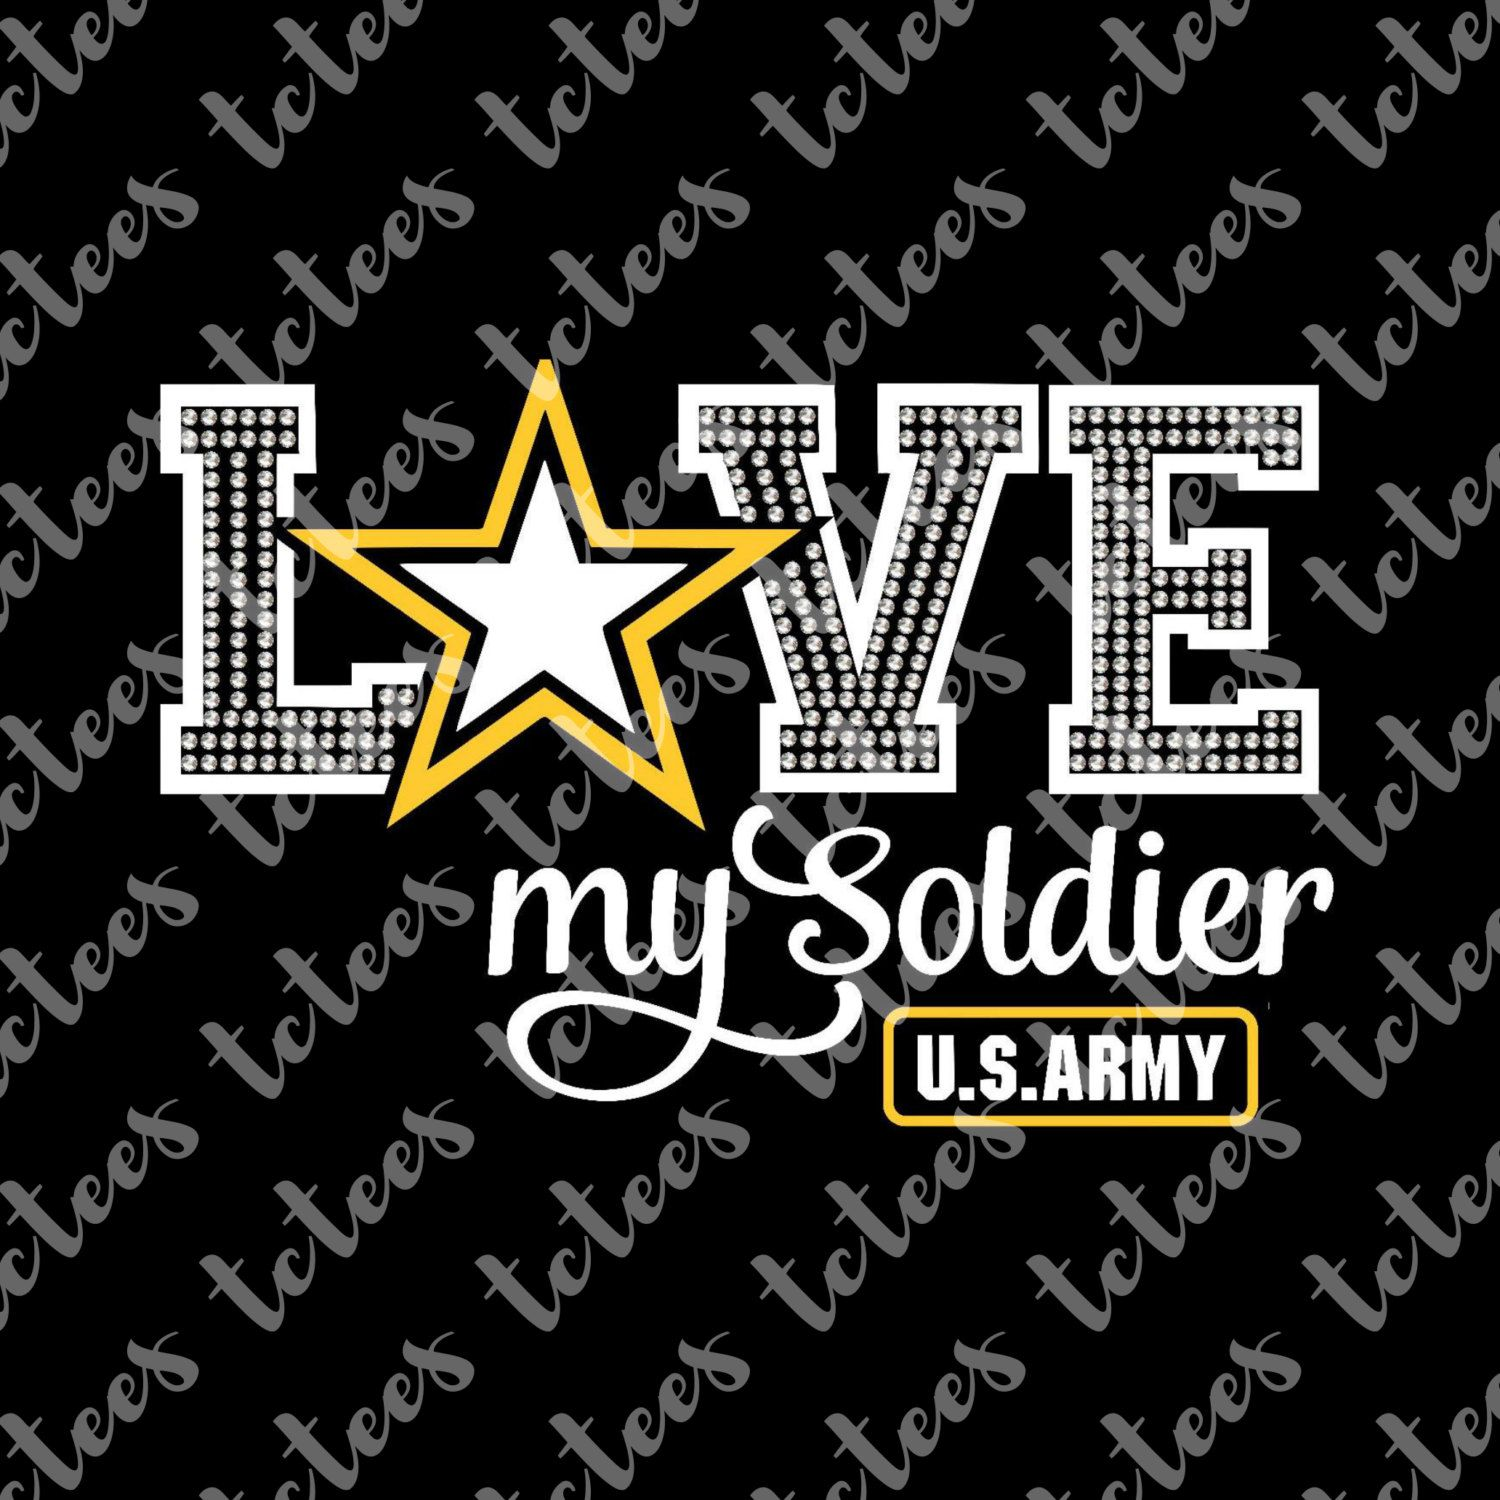 Army wife clipart svg clip art black and white library Love My Soldier - United States Army - Mixed Media - Army Wife - SVG ... clip art black and white library